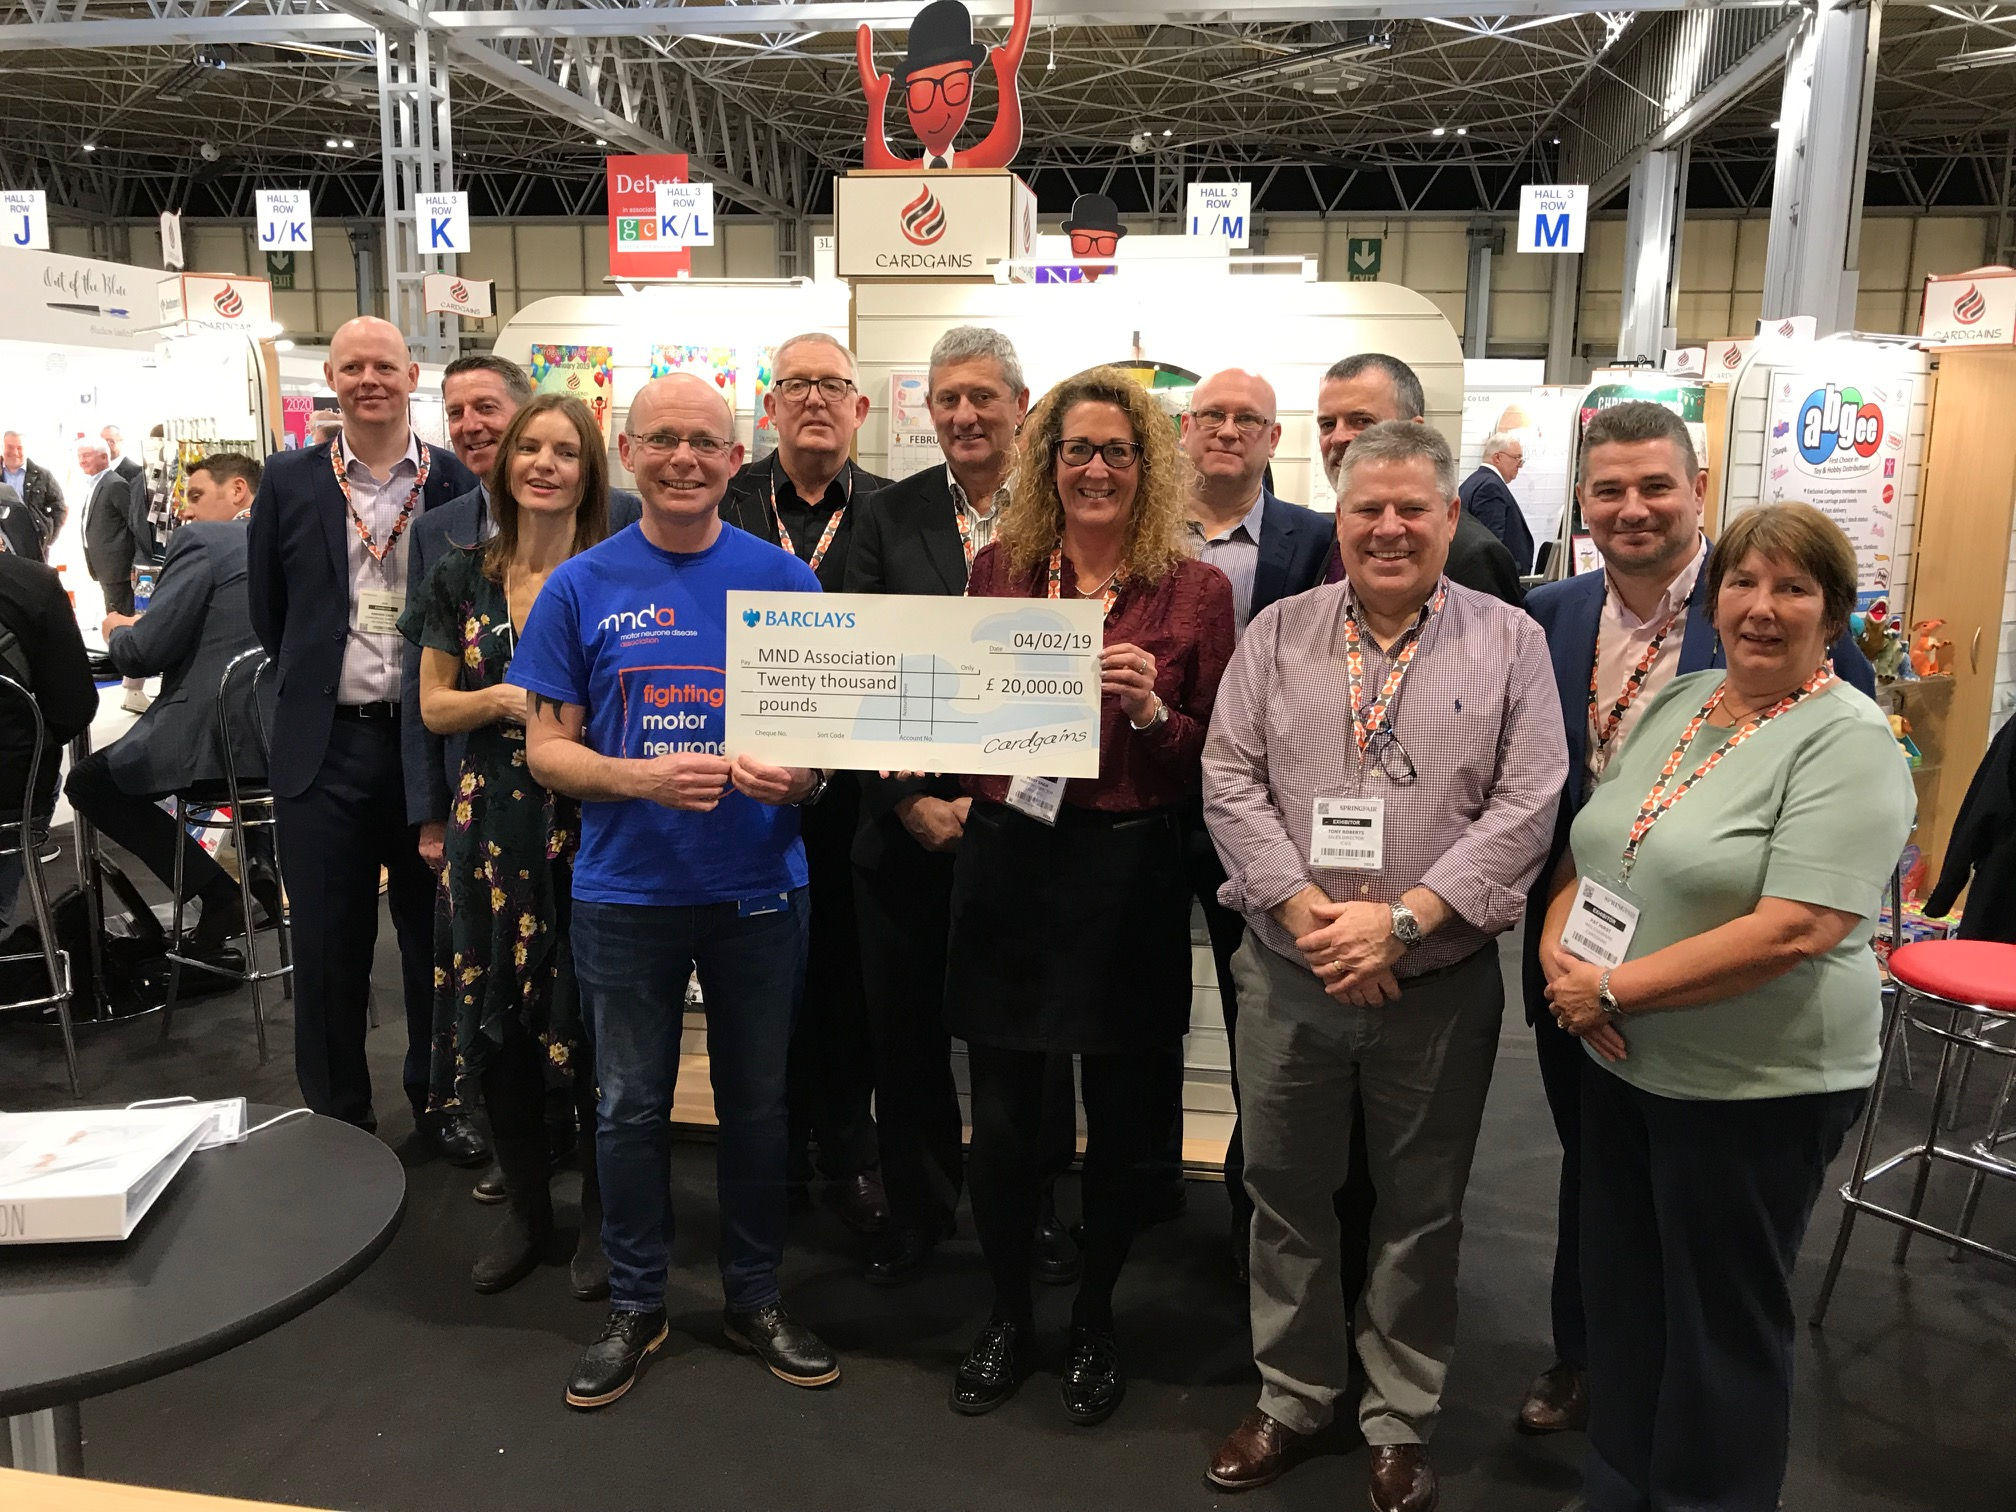 Above: The Motor Neurone Disease Association was delighted to be presented with a giant cheque for £20,000 from Cardgains as a result of the fundraising by the buying group in 2018, largely through its annual charity challenge, a mega walk in Cumbria undertaken by many publisher suppliers and retail members, many of whom were there for the chaque handover.